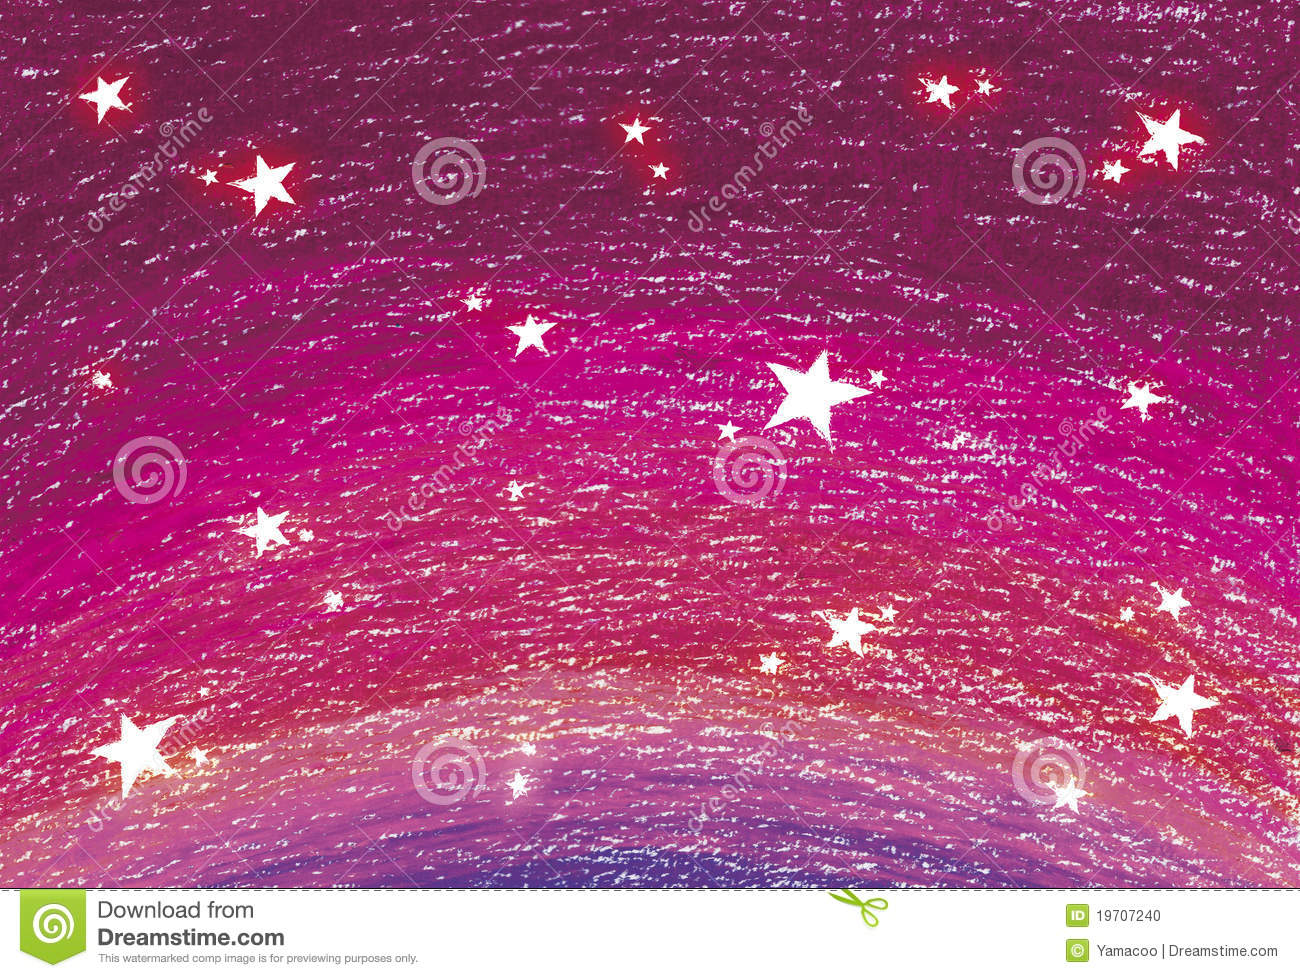 Blingee Cute Wallpaper Star Background Of Pink Color Stock Photo Image 19707240